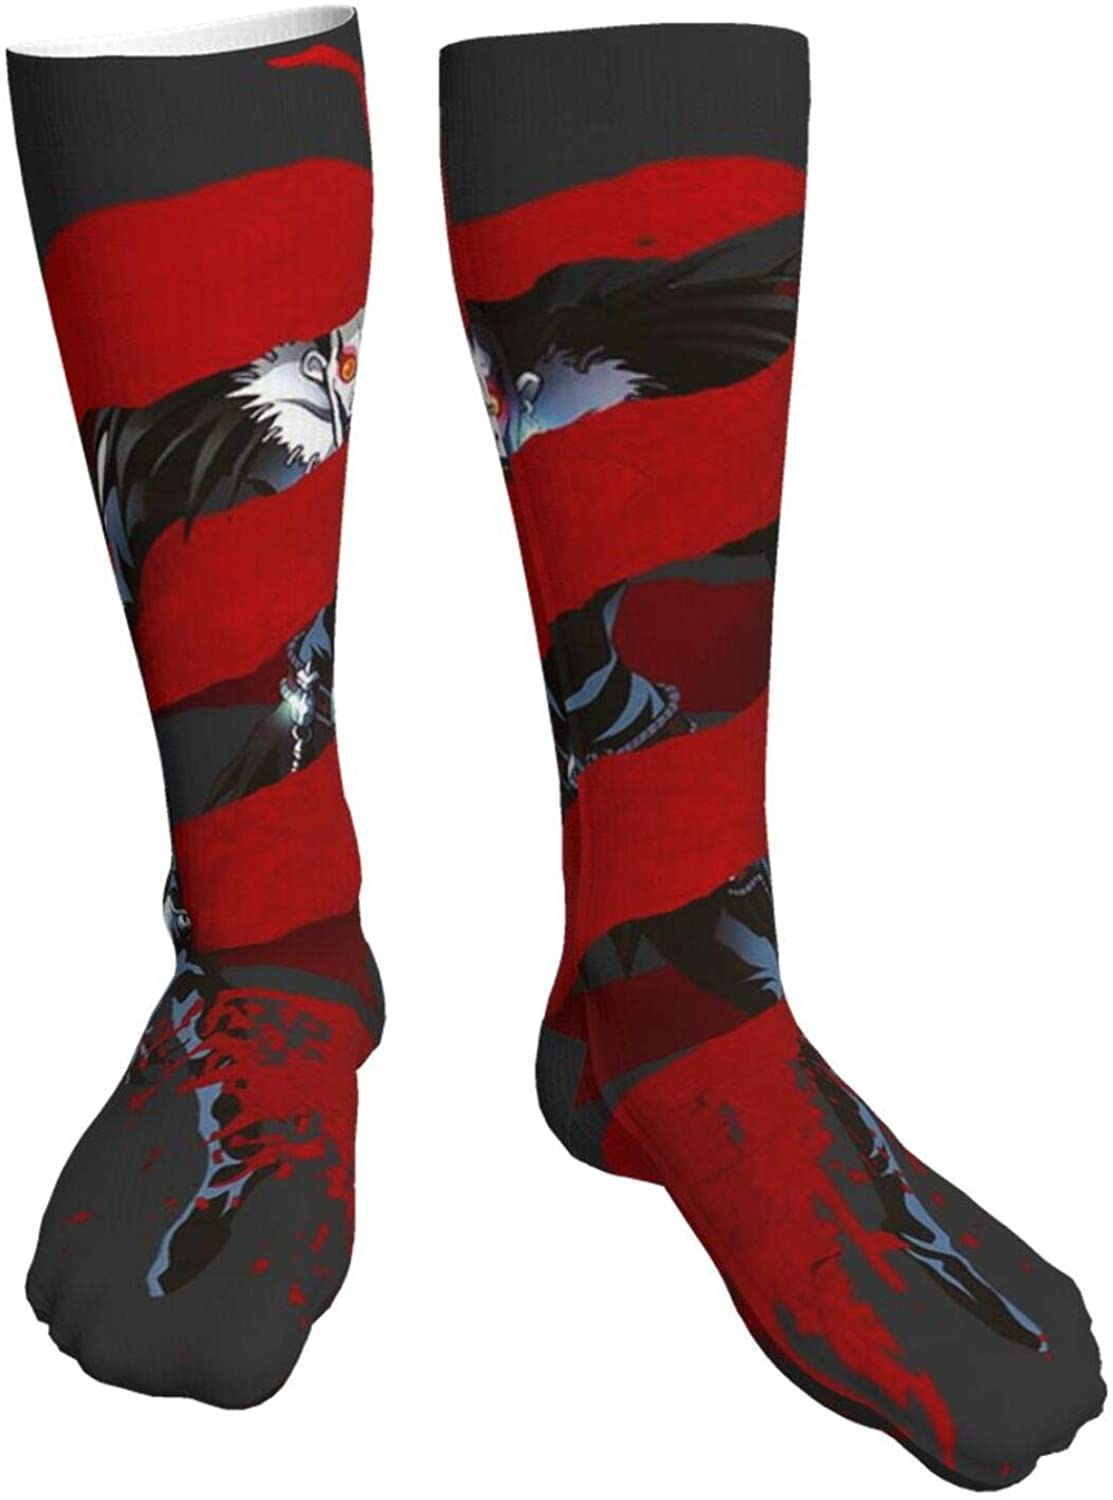 Mens Heavy Thick Socks Death Note Ryuk Shinigami A-Pple Fusion Soft Comfort Crew Socks Casual Athletic 20in Long The-Calf Sock